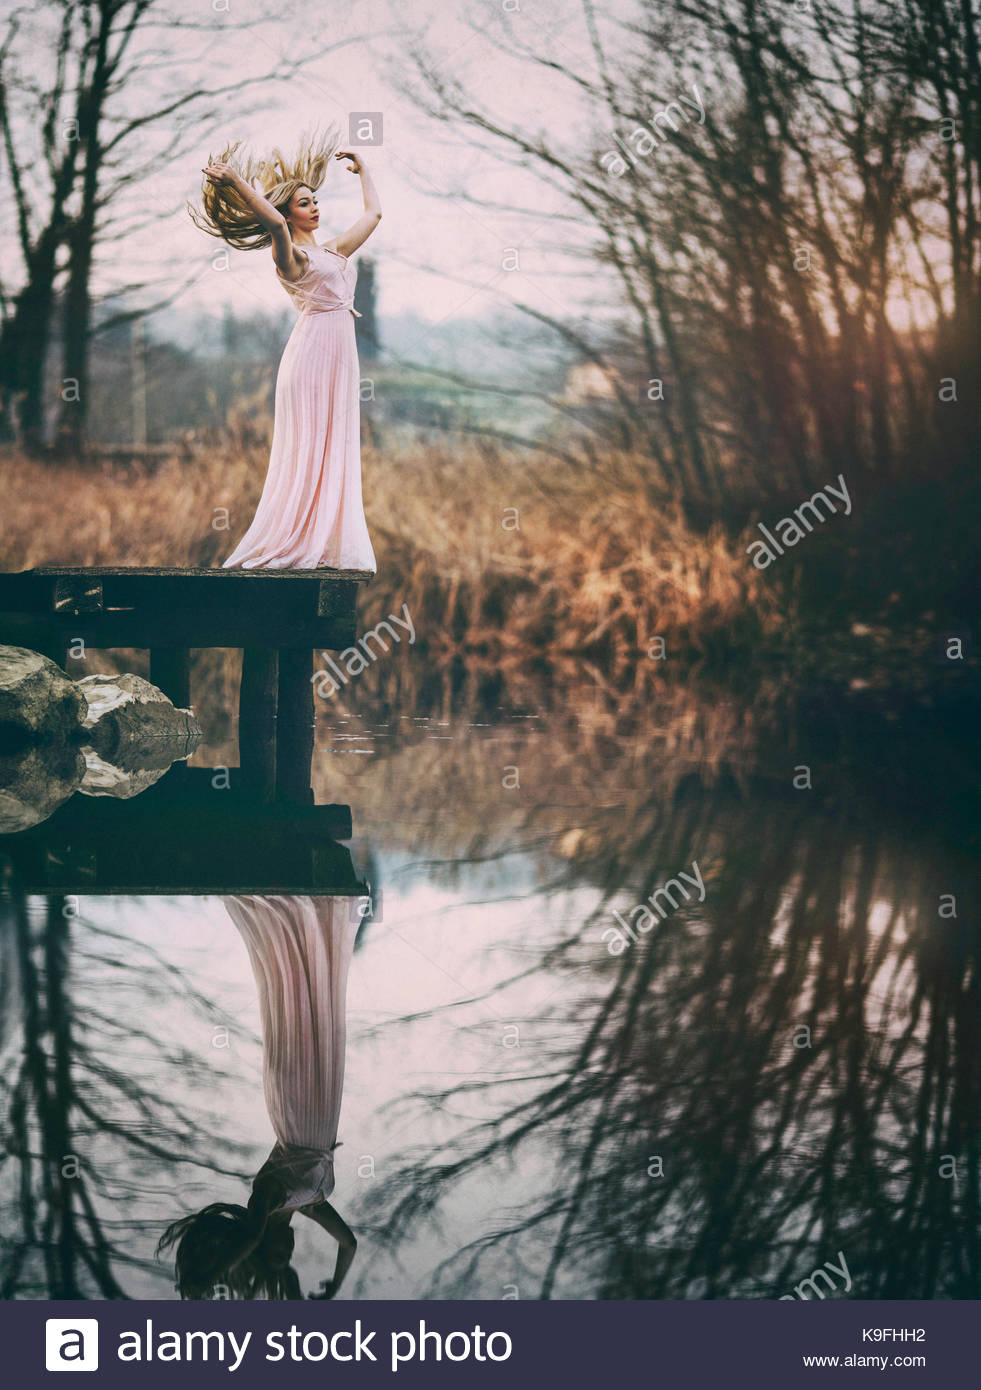 Lady in pink dress by a pond: beauty in nature - Stock Image